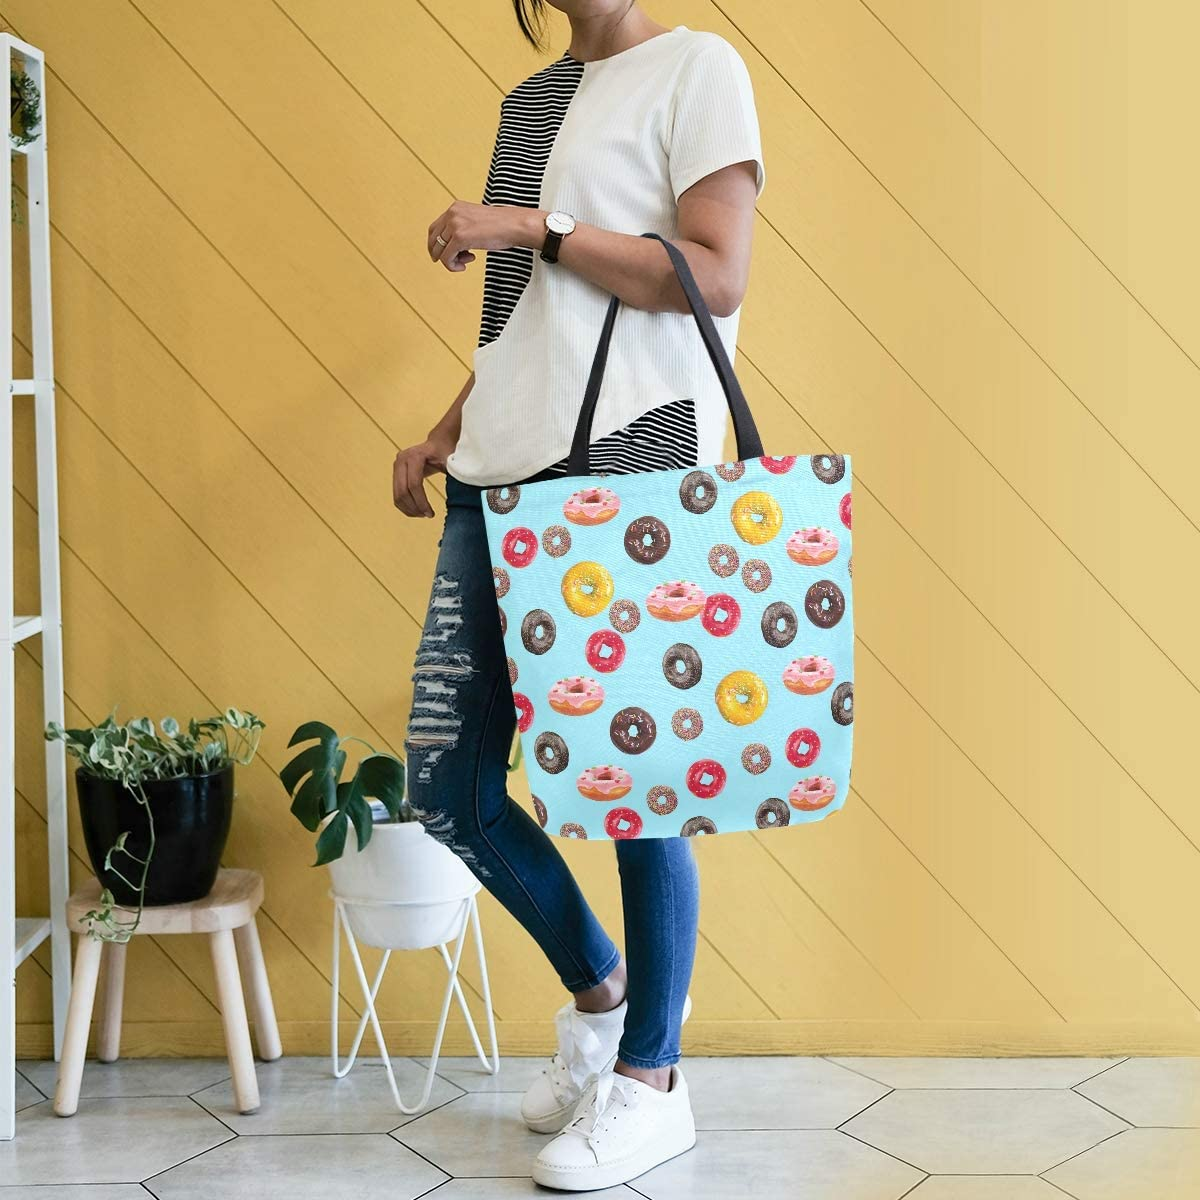 Titlesign Delicious Pizza Large Canvas Shoulder Tote Top Handle Bag for Gym Beach Travel Shopping